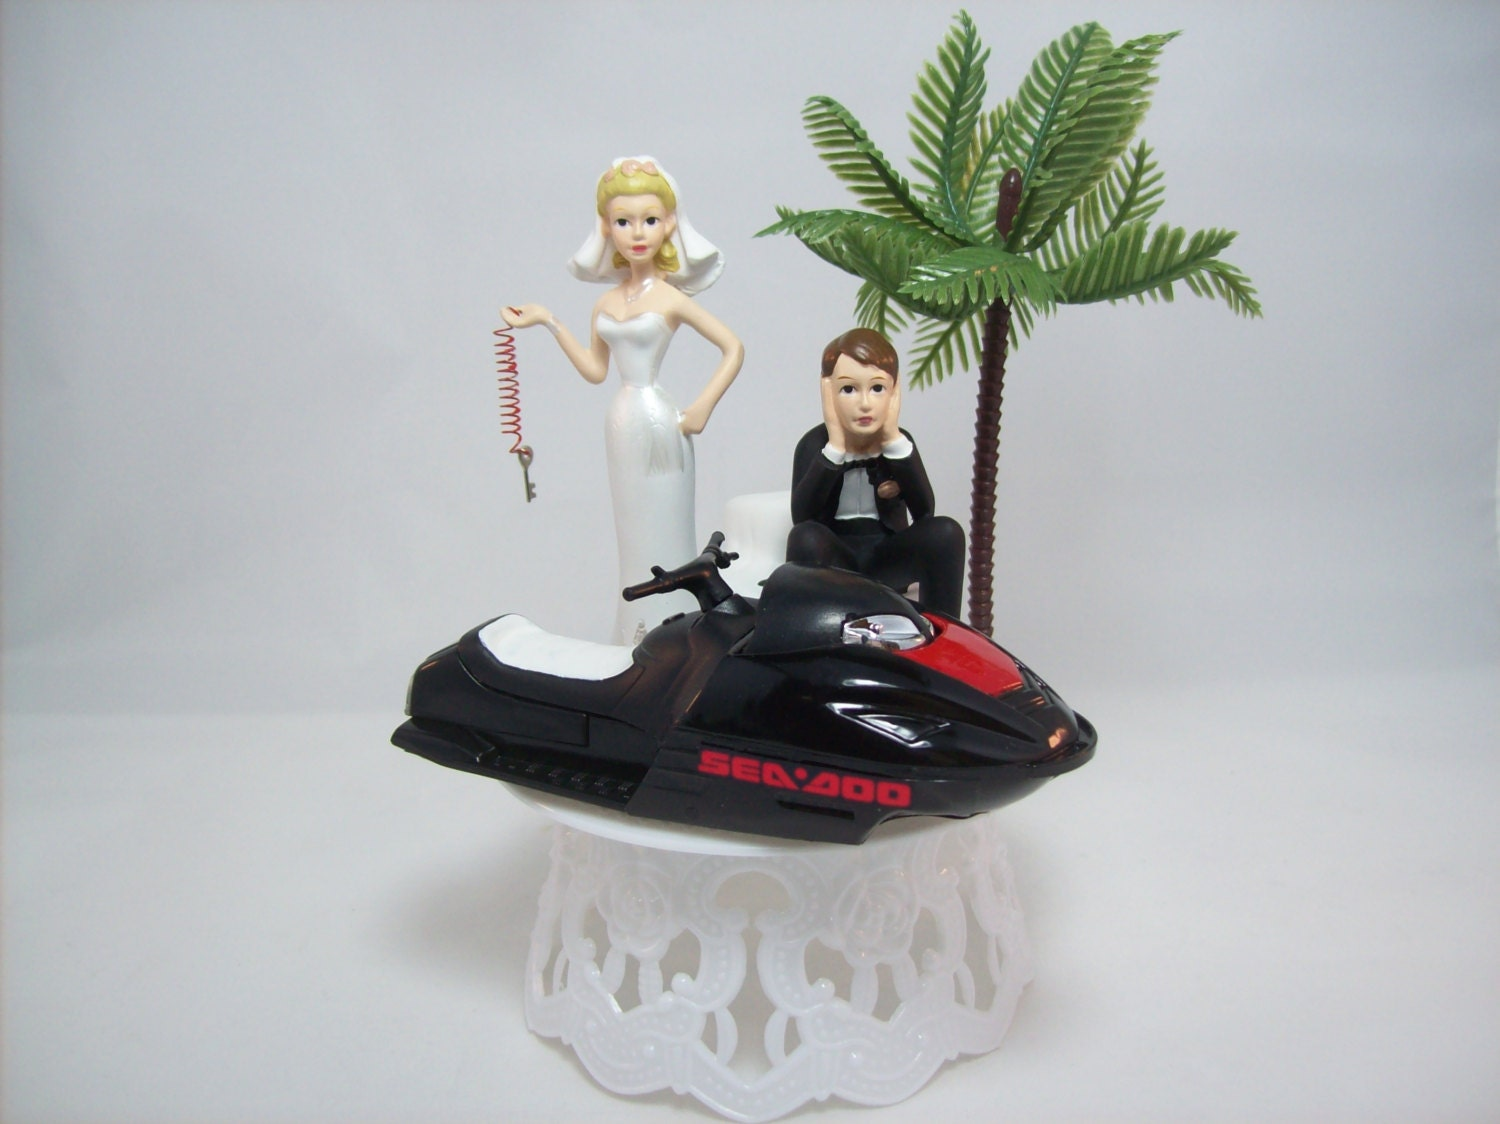 water ski wedding cake topper jet ski wedding cake topper w die cast black ski sea doo wave 21682